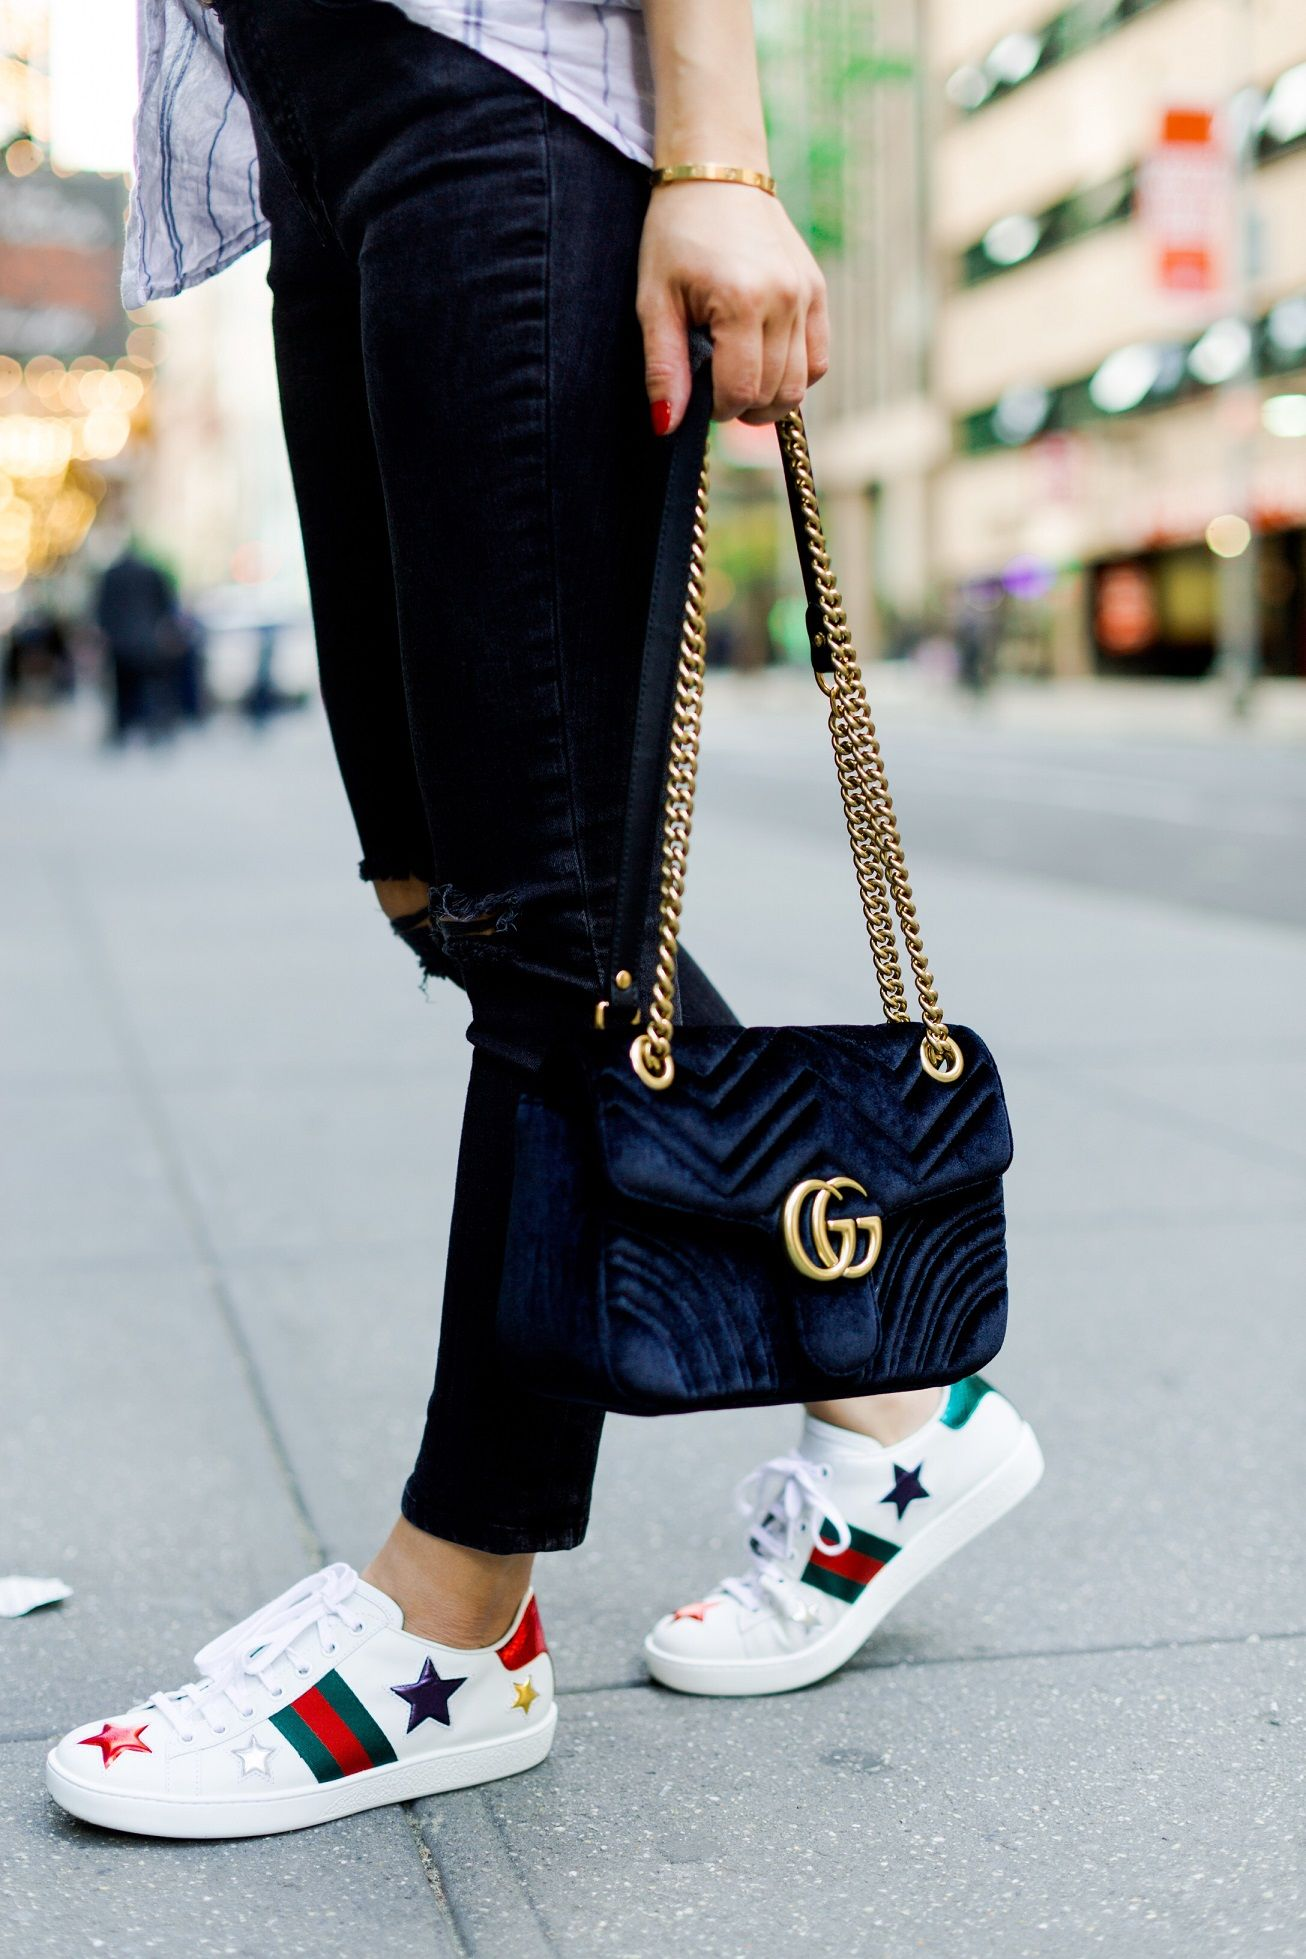 poshclassymom-casual-street-style -new-york-zara-striped-shirt-anine-bing-distressed-jeans-gucci-star-sneakers-gucci-marmont-velvet- bag-6 9c42a8869459c